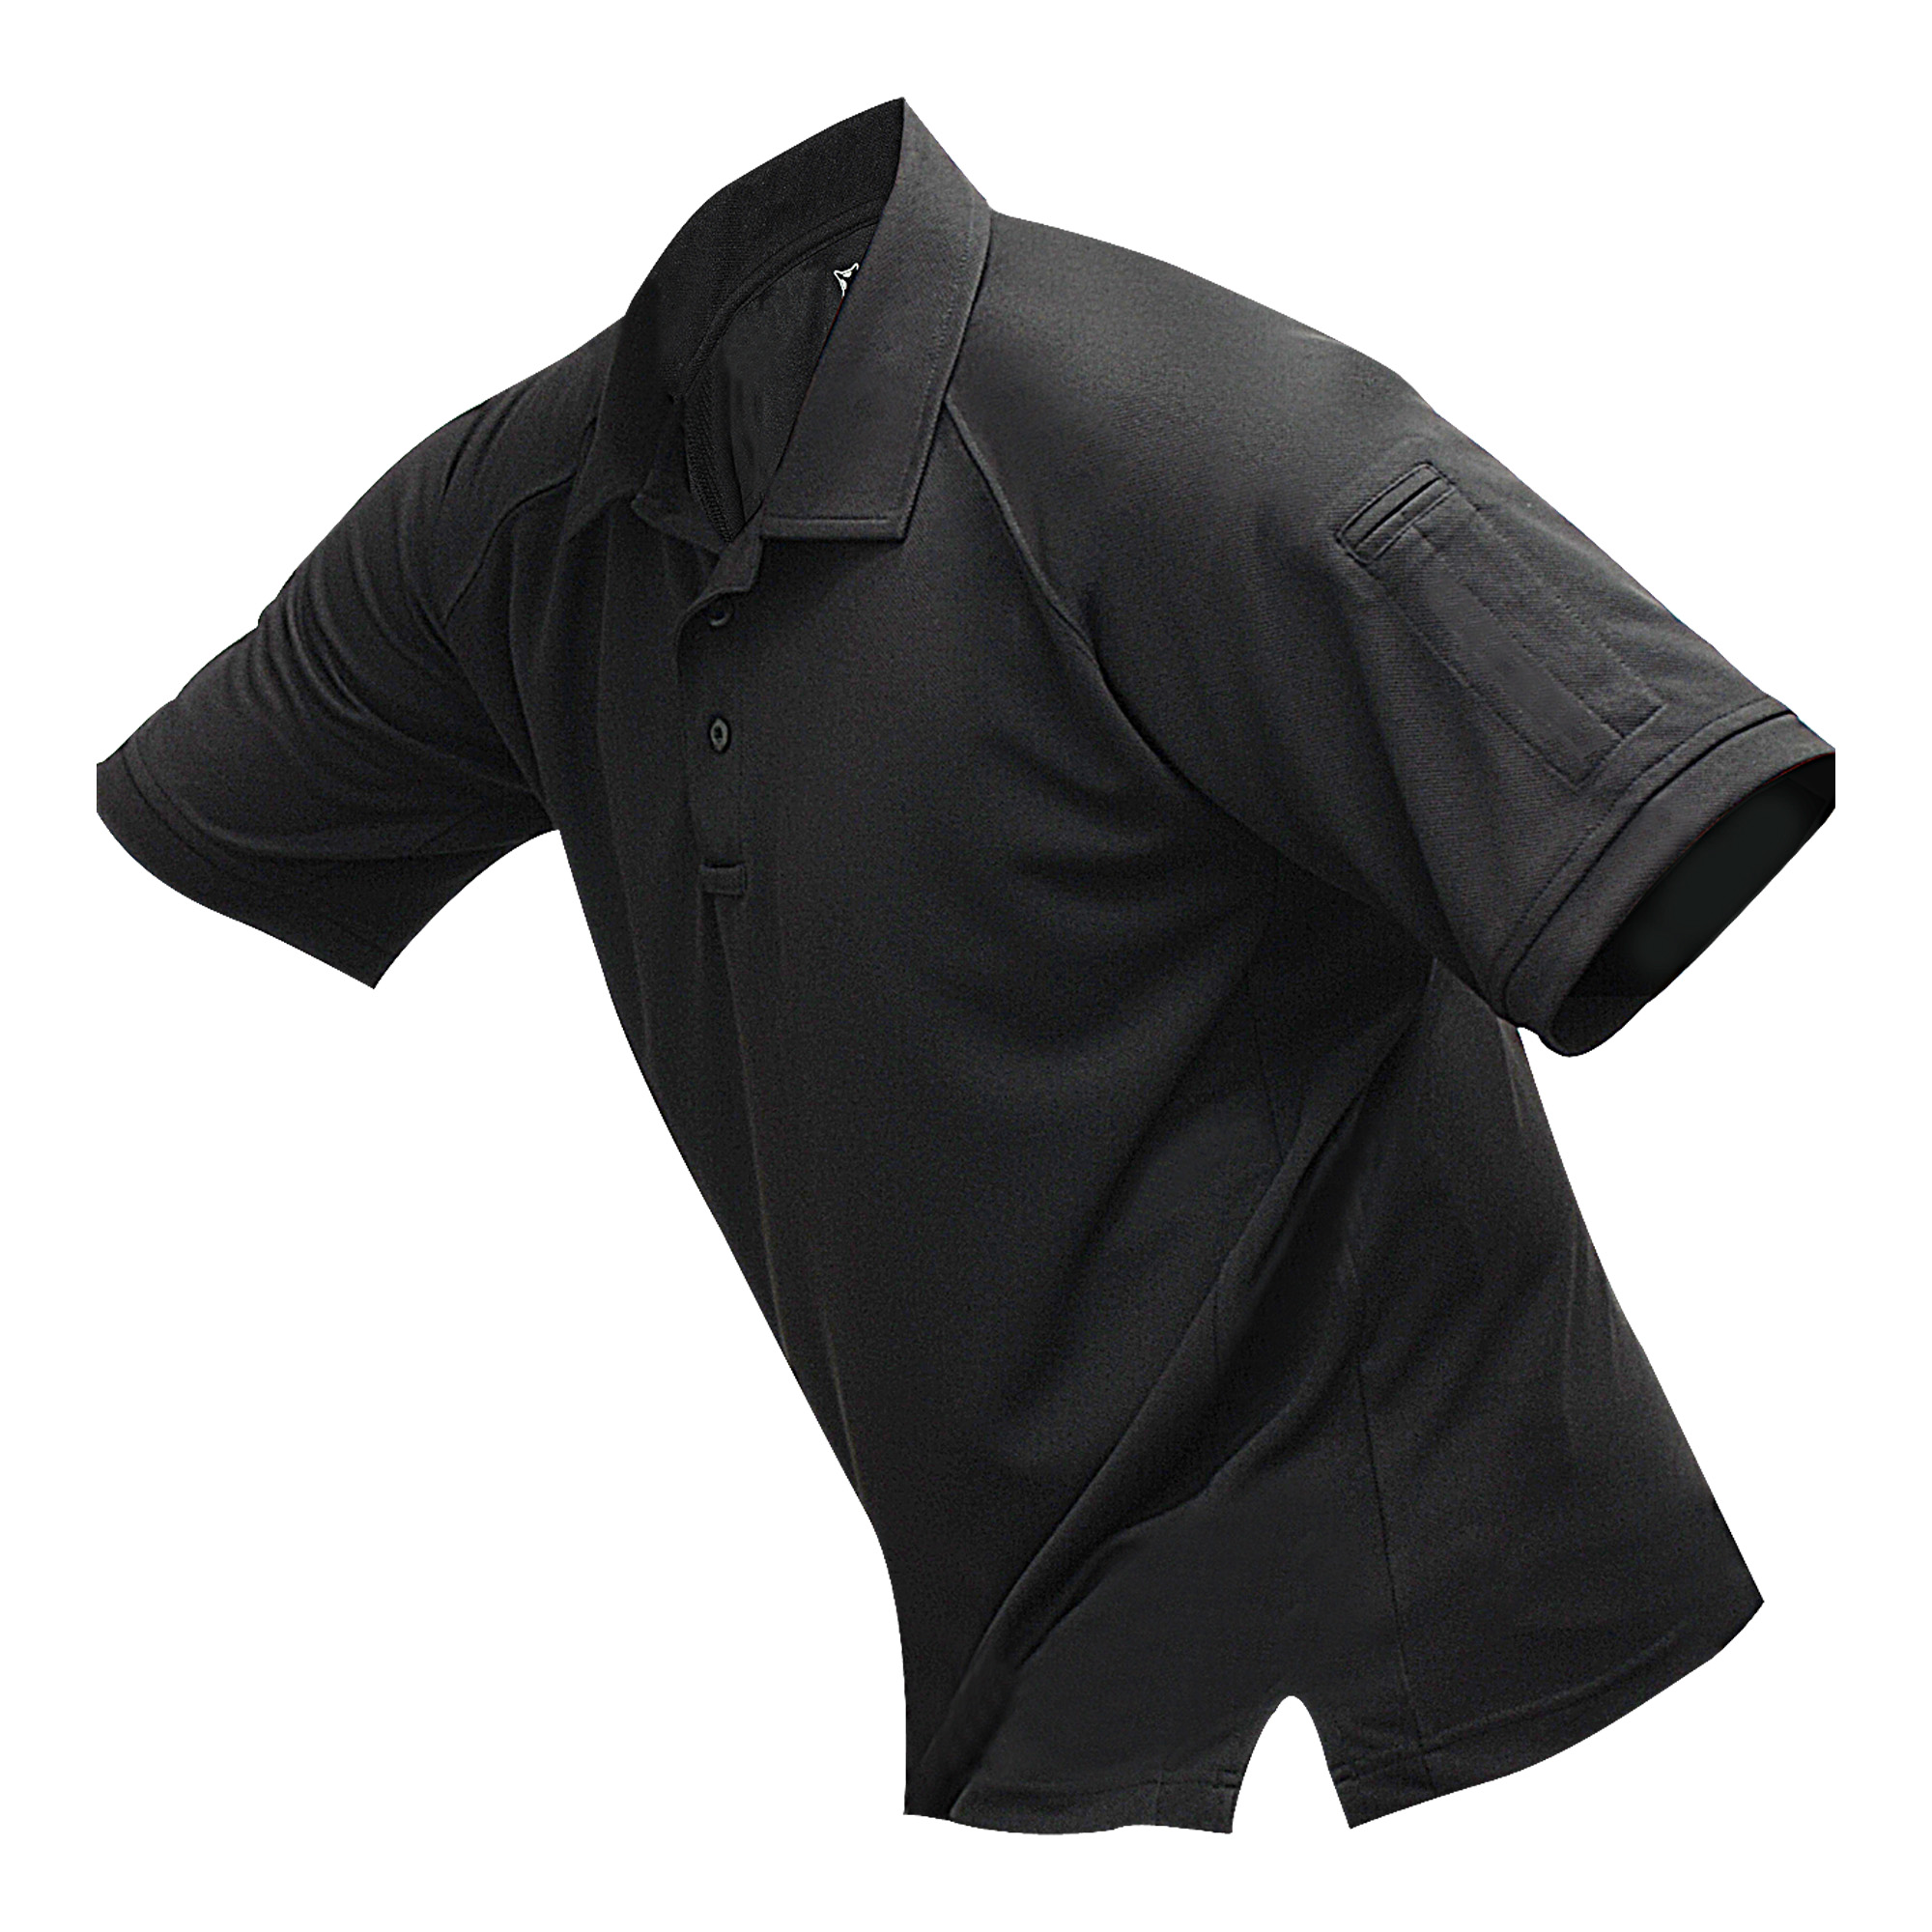 """The Vertx coldblack(R) polo allows users to stay cool. Exclusive coldblack(R) technology combined with moisture-wicking fabric reflects 80% of the sun's UV rays and lessens heat absorption - resulting in a light"""" breathable shirt ideal for warm weather missions. Streamlined design"""" convenient sleeve pockets for pens and pencils"""" and a no-roll collar give this shirt a professional look with all the tactical functionality to get the job done."""